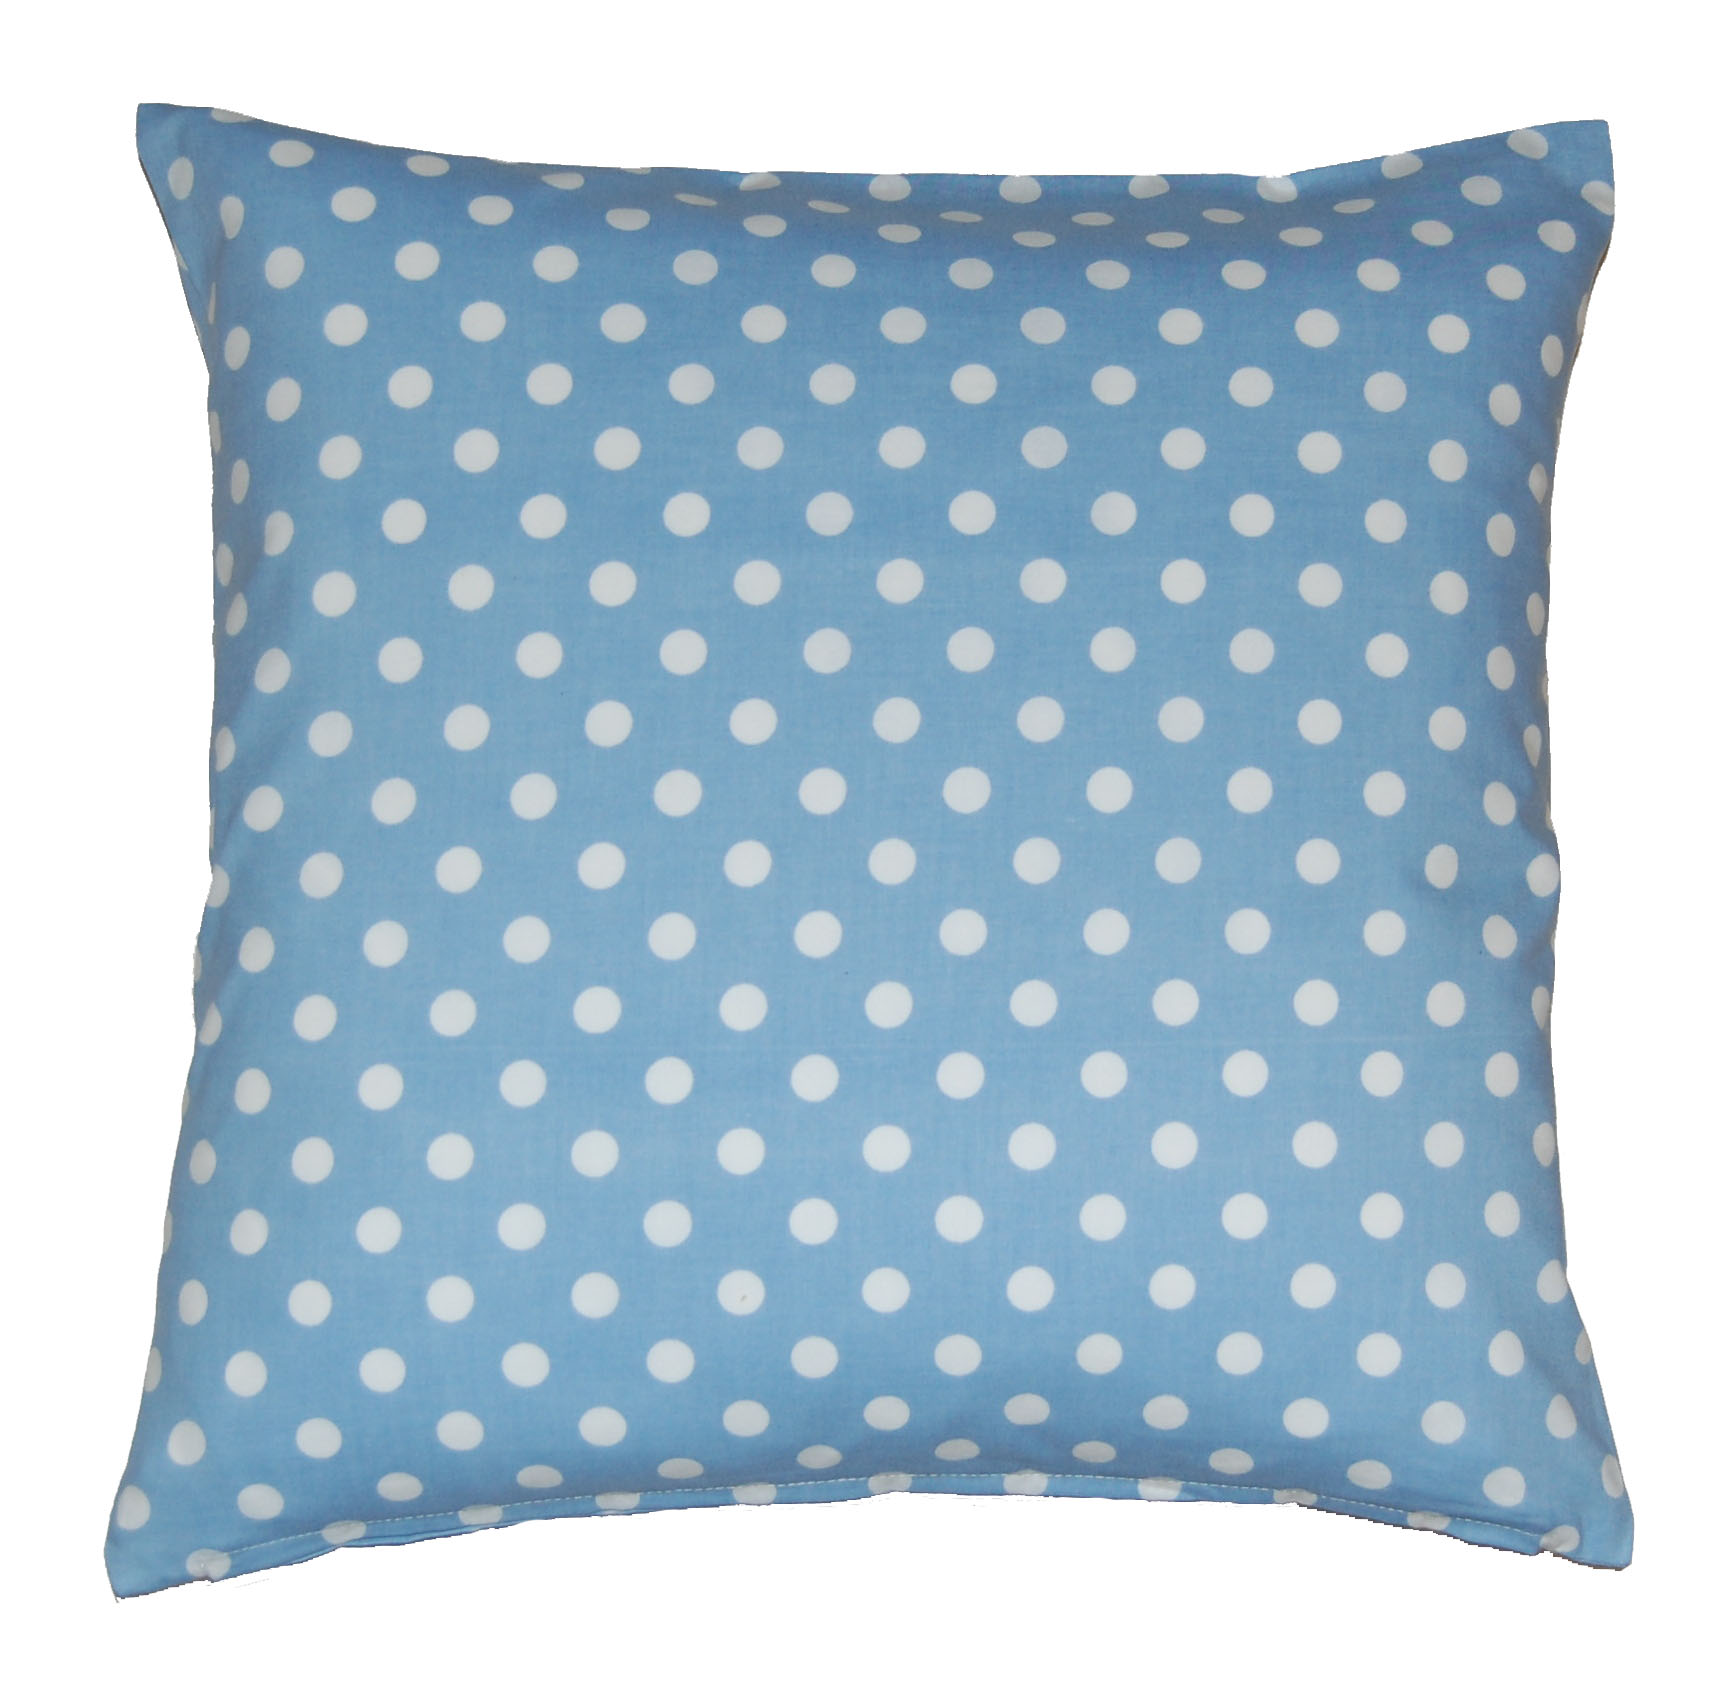 Shop our best selection of Polka Dot Outdoor Cushions to reflect your style and inspire your outdoor space. Find the perfect patio furniture & backyard decor at Hayneedle, where you can buy online while you explore our room designs and curated looks for tips, ideas & inspiration to help you along the way.